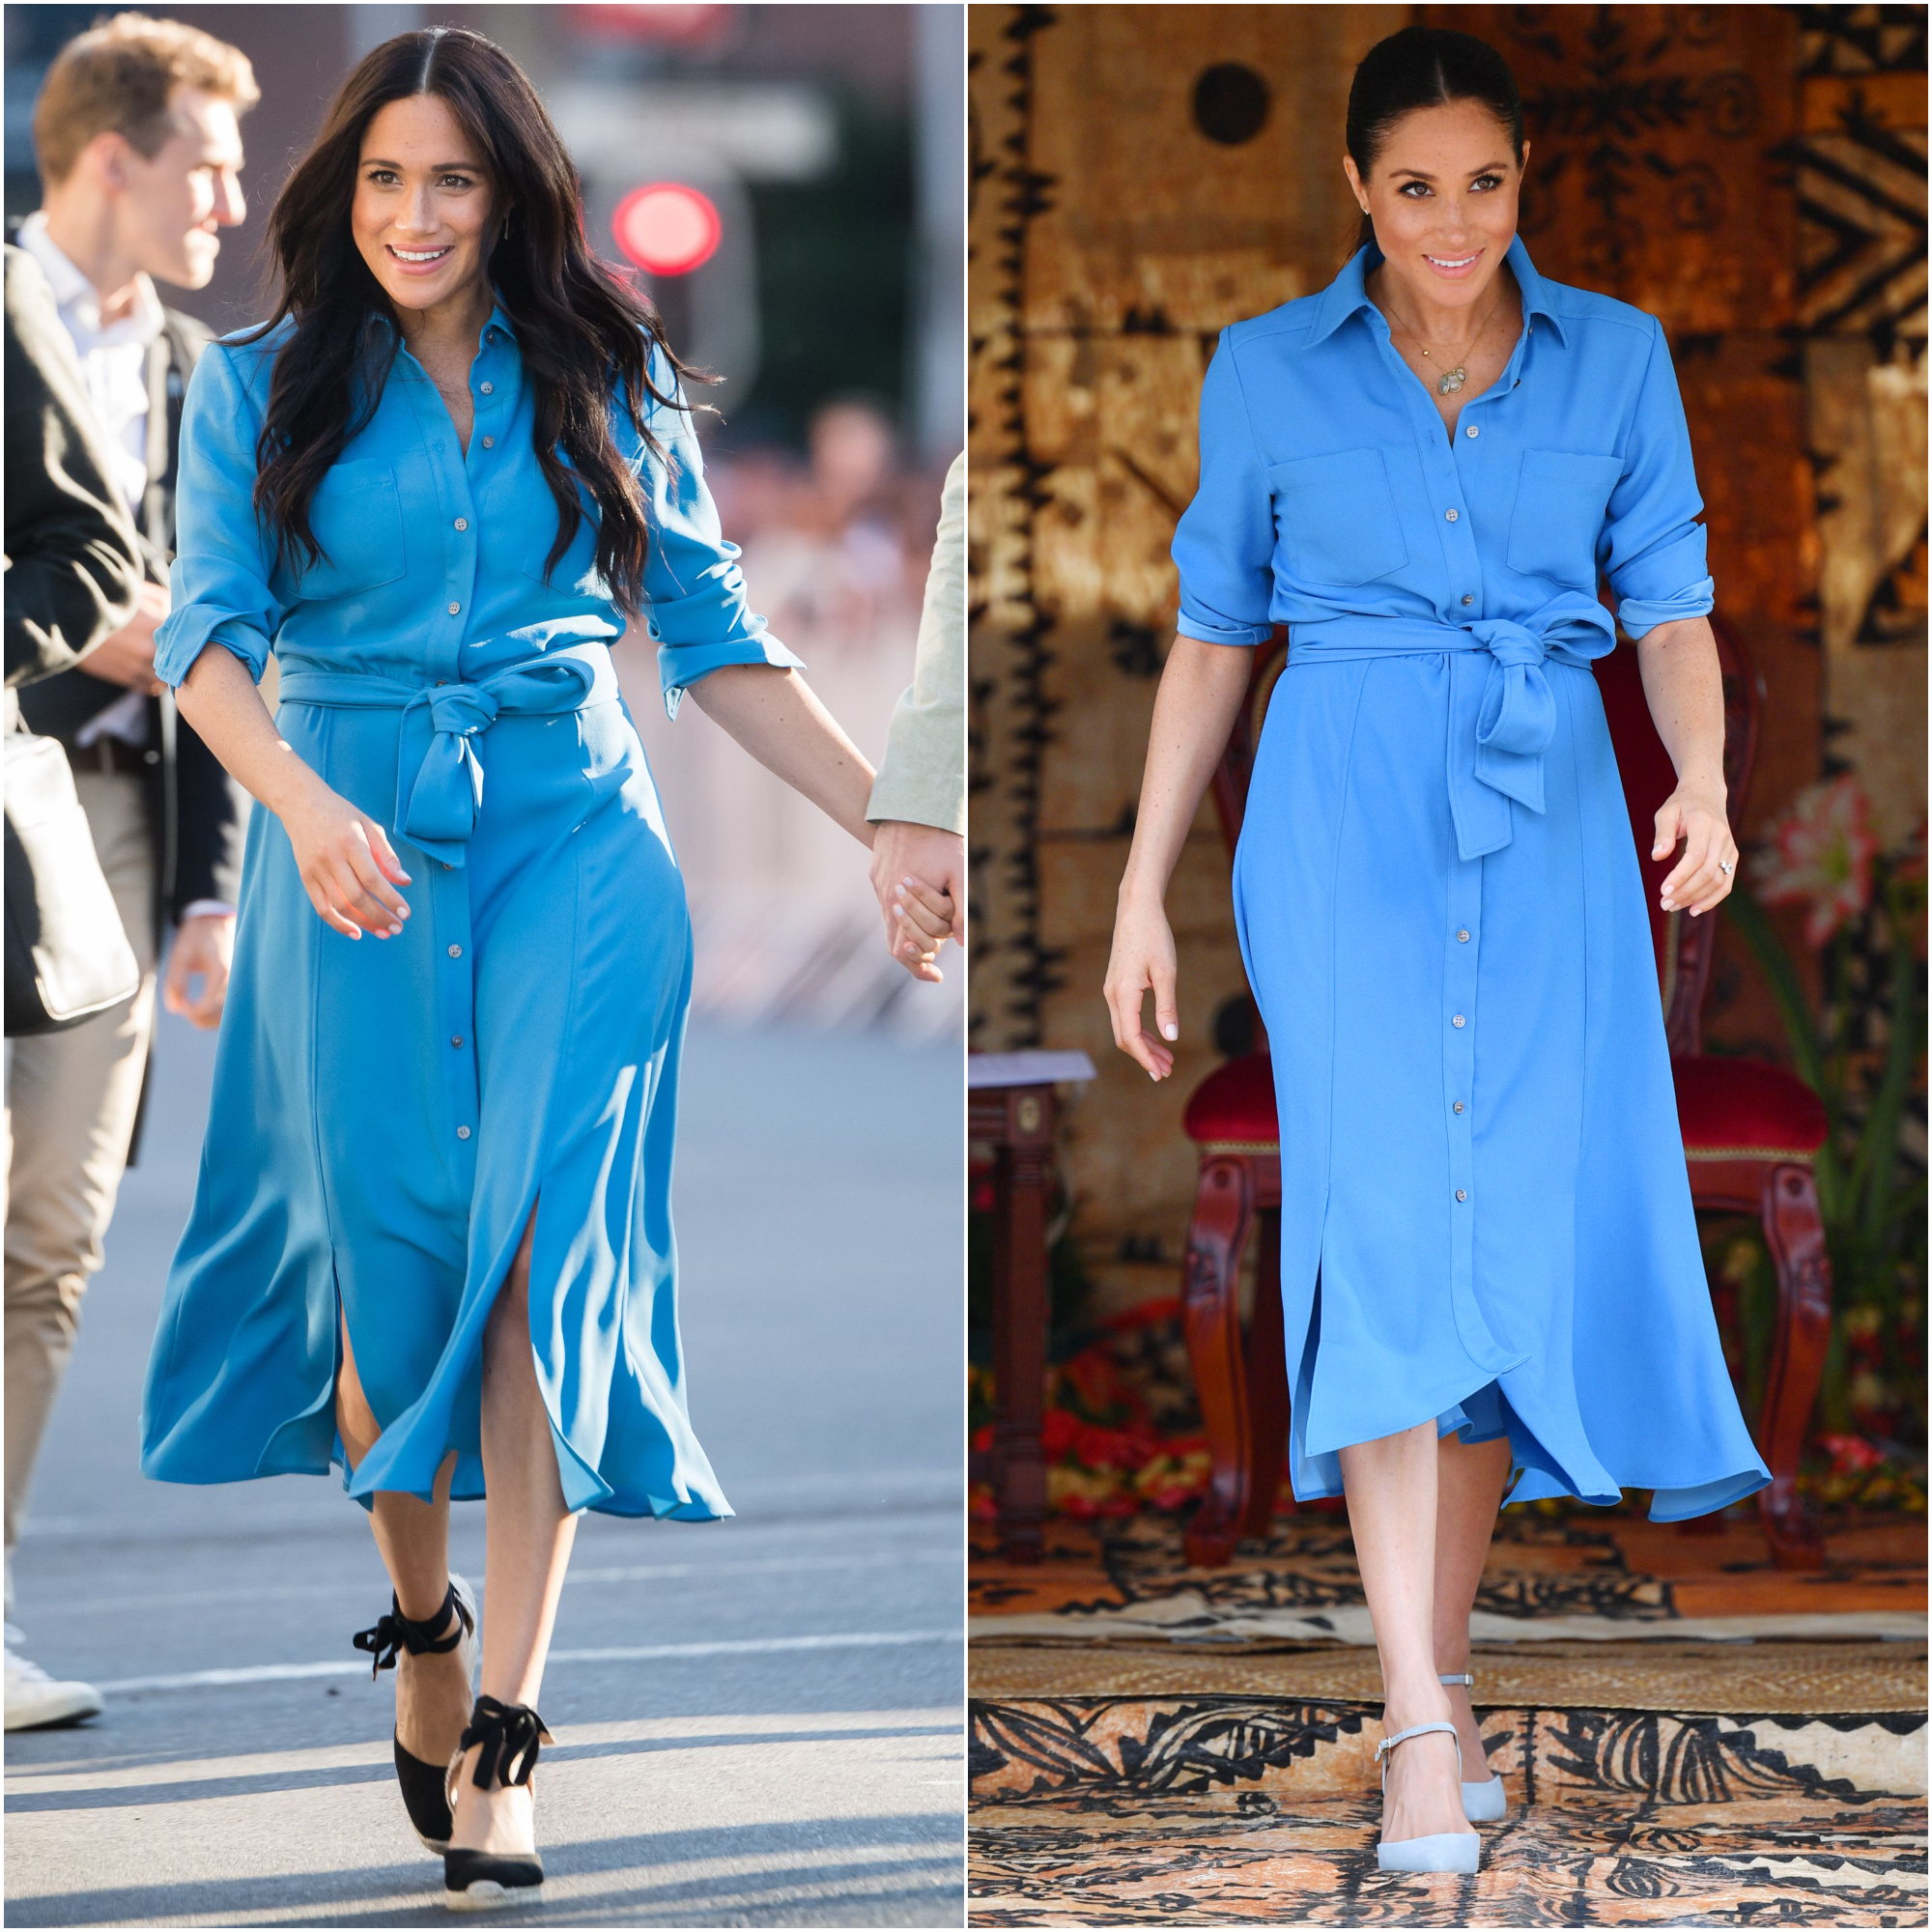 meghan markle spotted in same blue dress she wore during pregnancy blue dress she wore during pregnancy